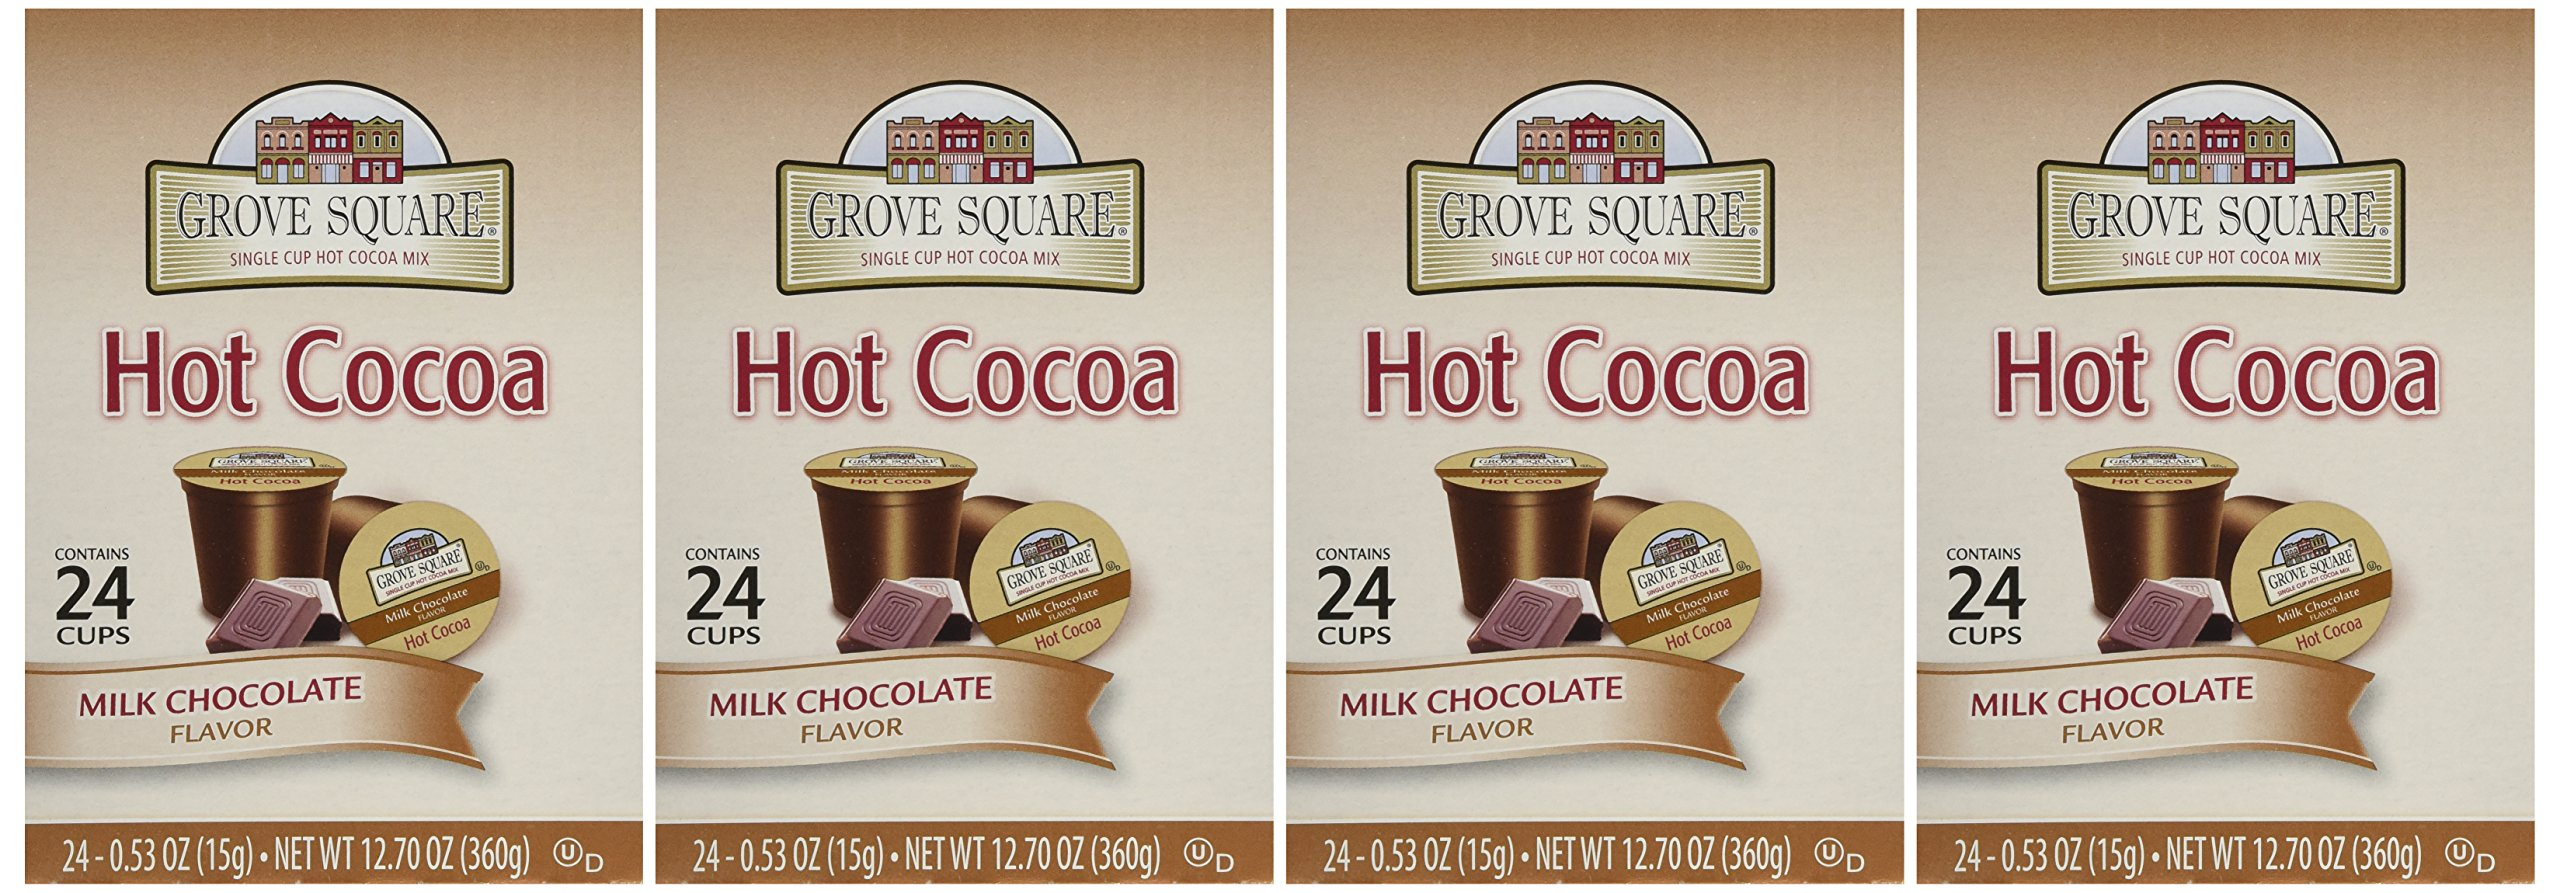 Grove Square Milk Chocolate Hot Cocoa 96 Count by Grove Square